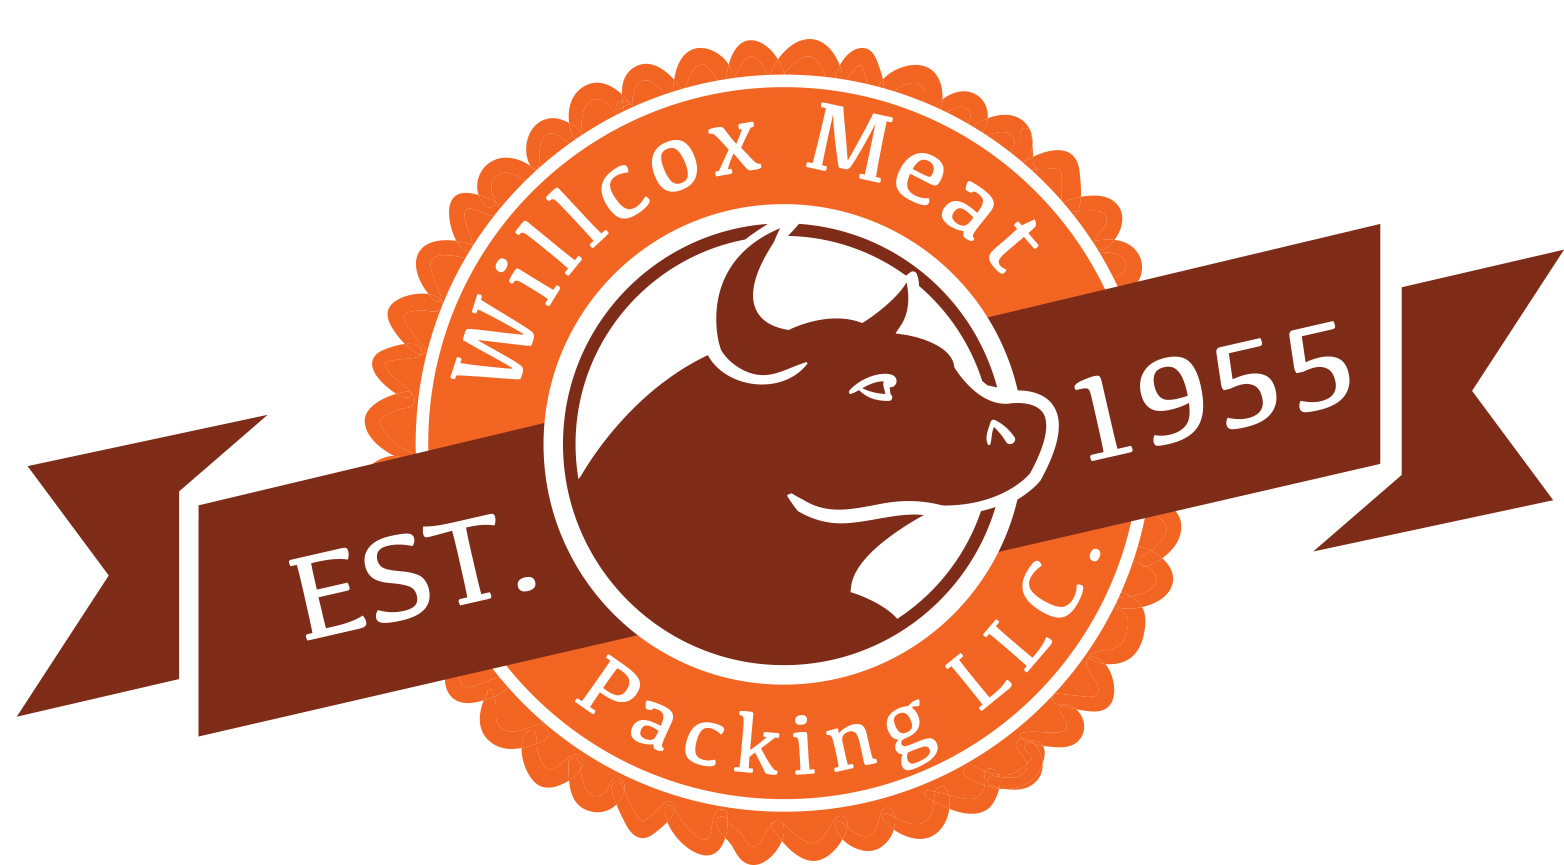 WILLCOX MEAT PACKING LLC.